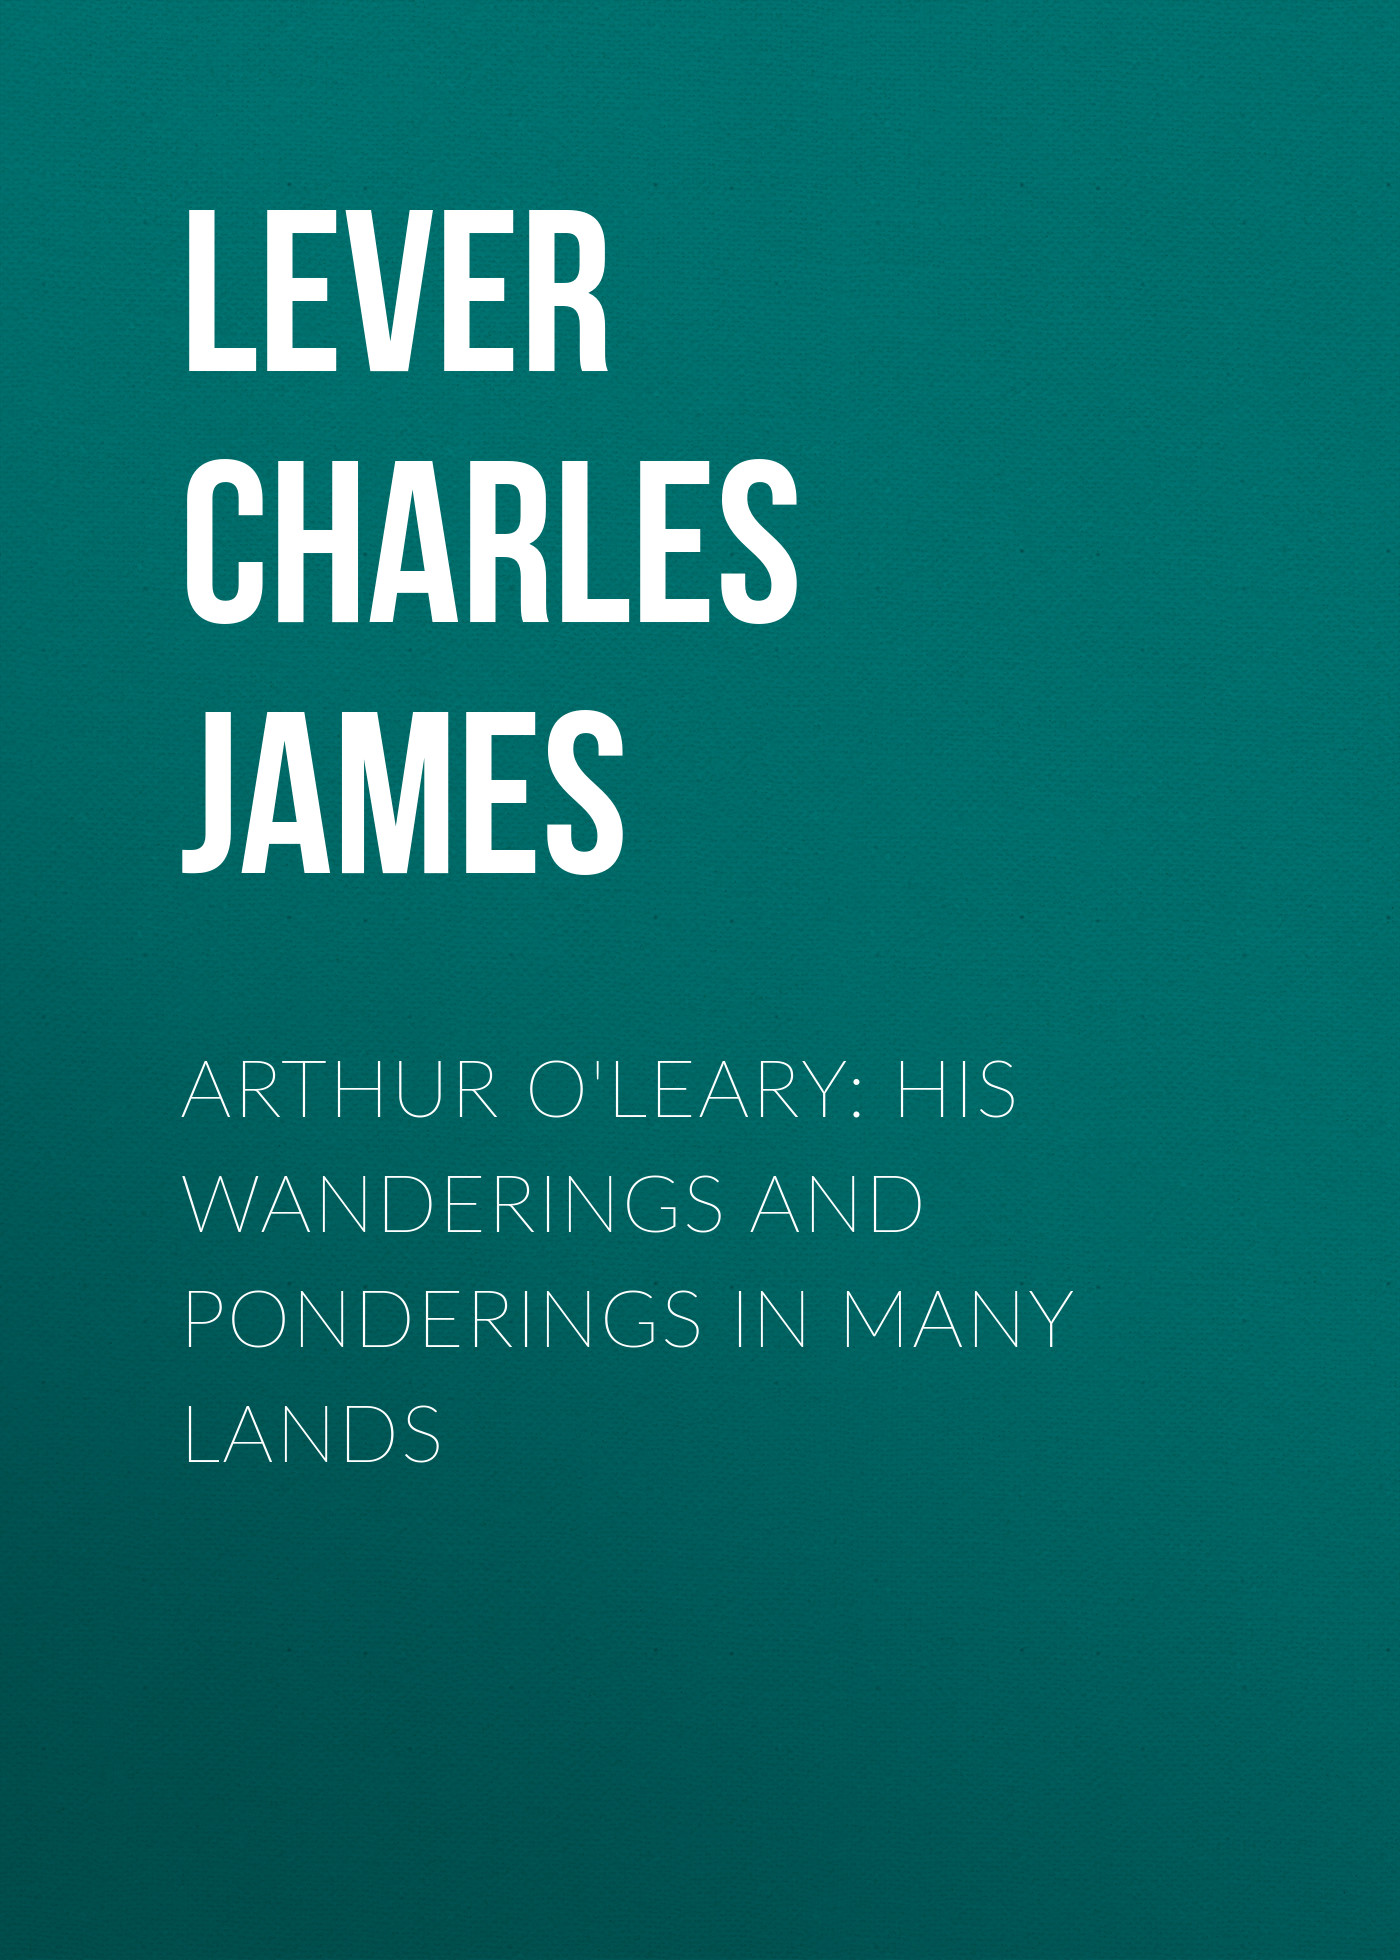 цена Lever Charles James Arthur O'Leary: His Wanderings And Ponderings In Many Lands онлайн в 2017 году